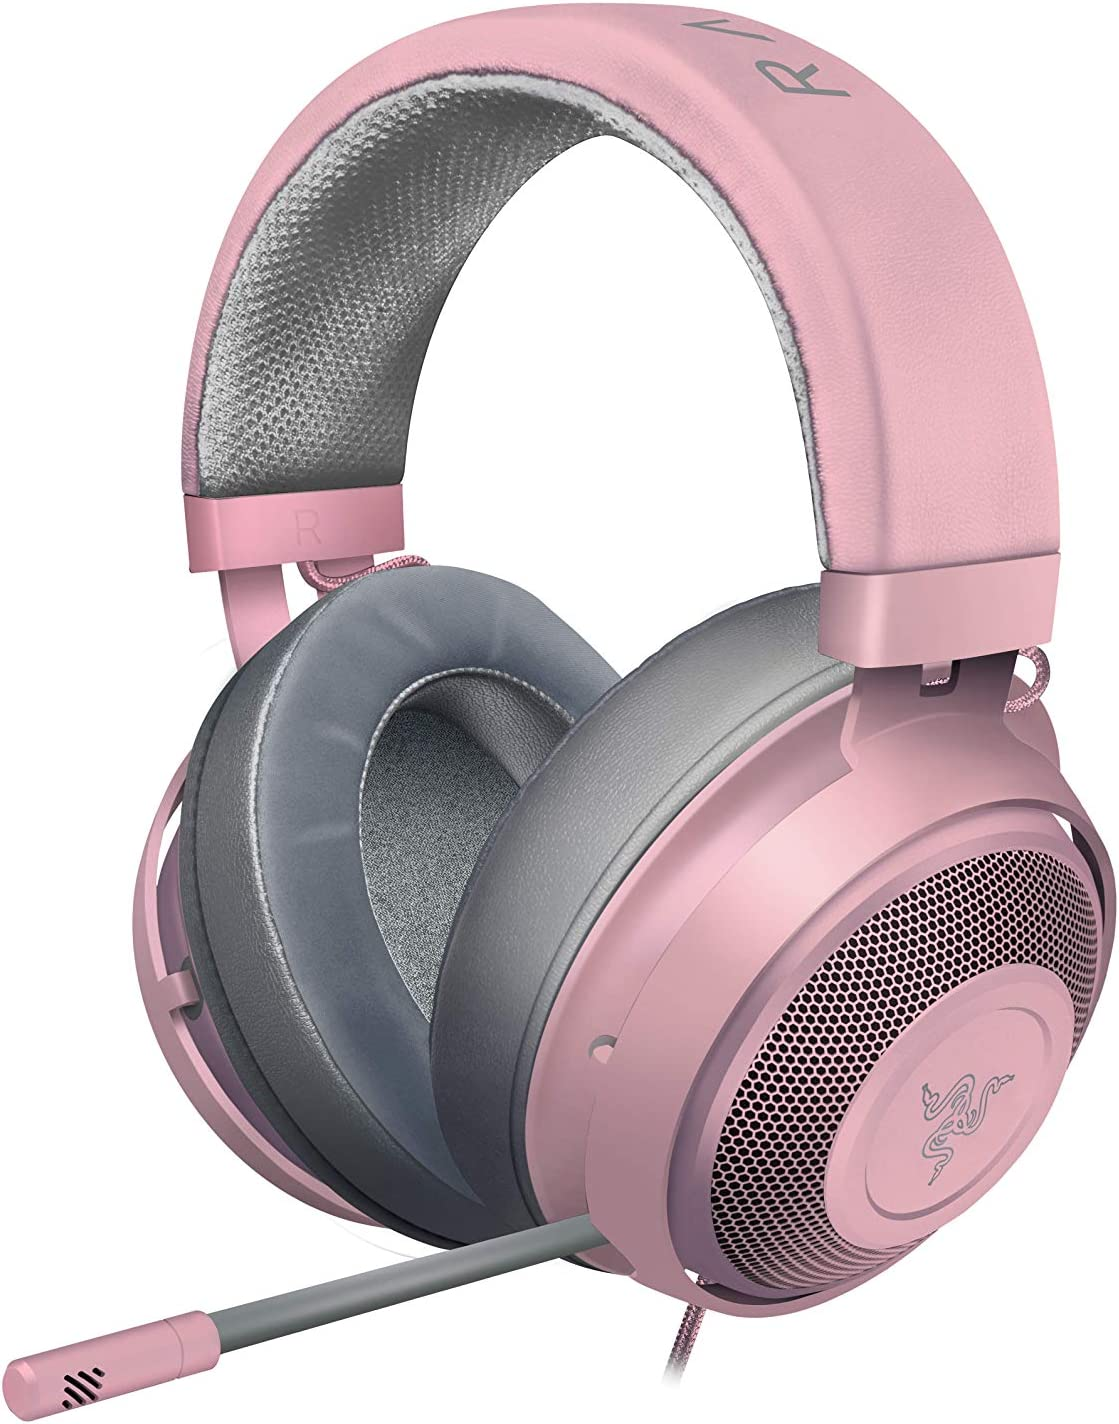 Razer Kraken Gaming Headset 2019: Lightweight Aluminum Frame - Retractable Noise Cancelling Mic - for PC, Xbox, PS4, Nintendo Switch - Quartz Pink